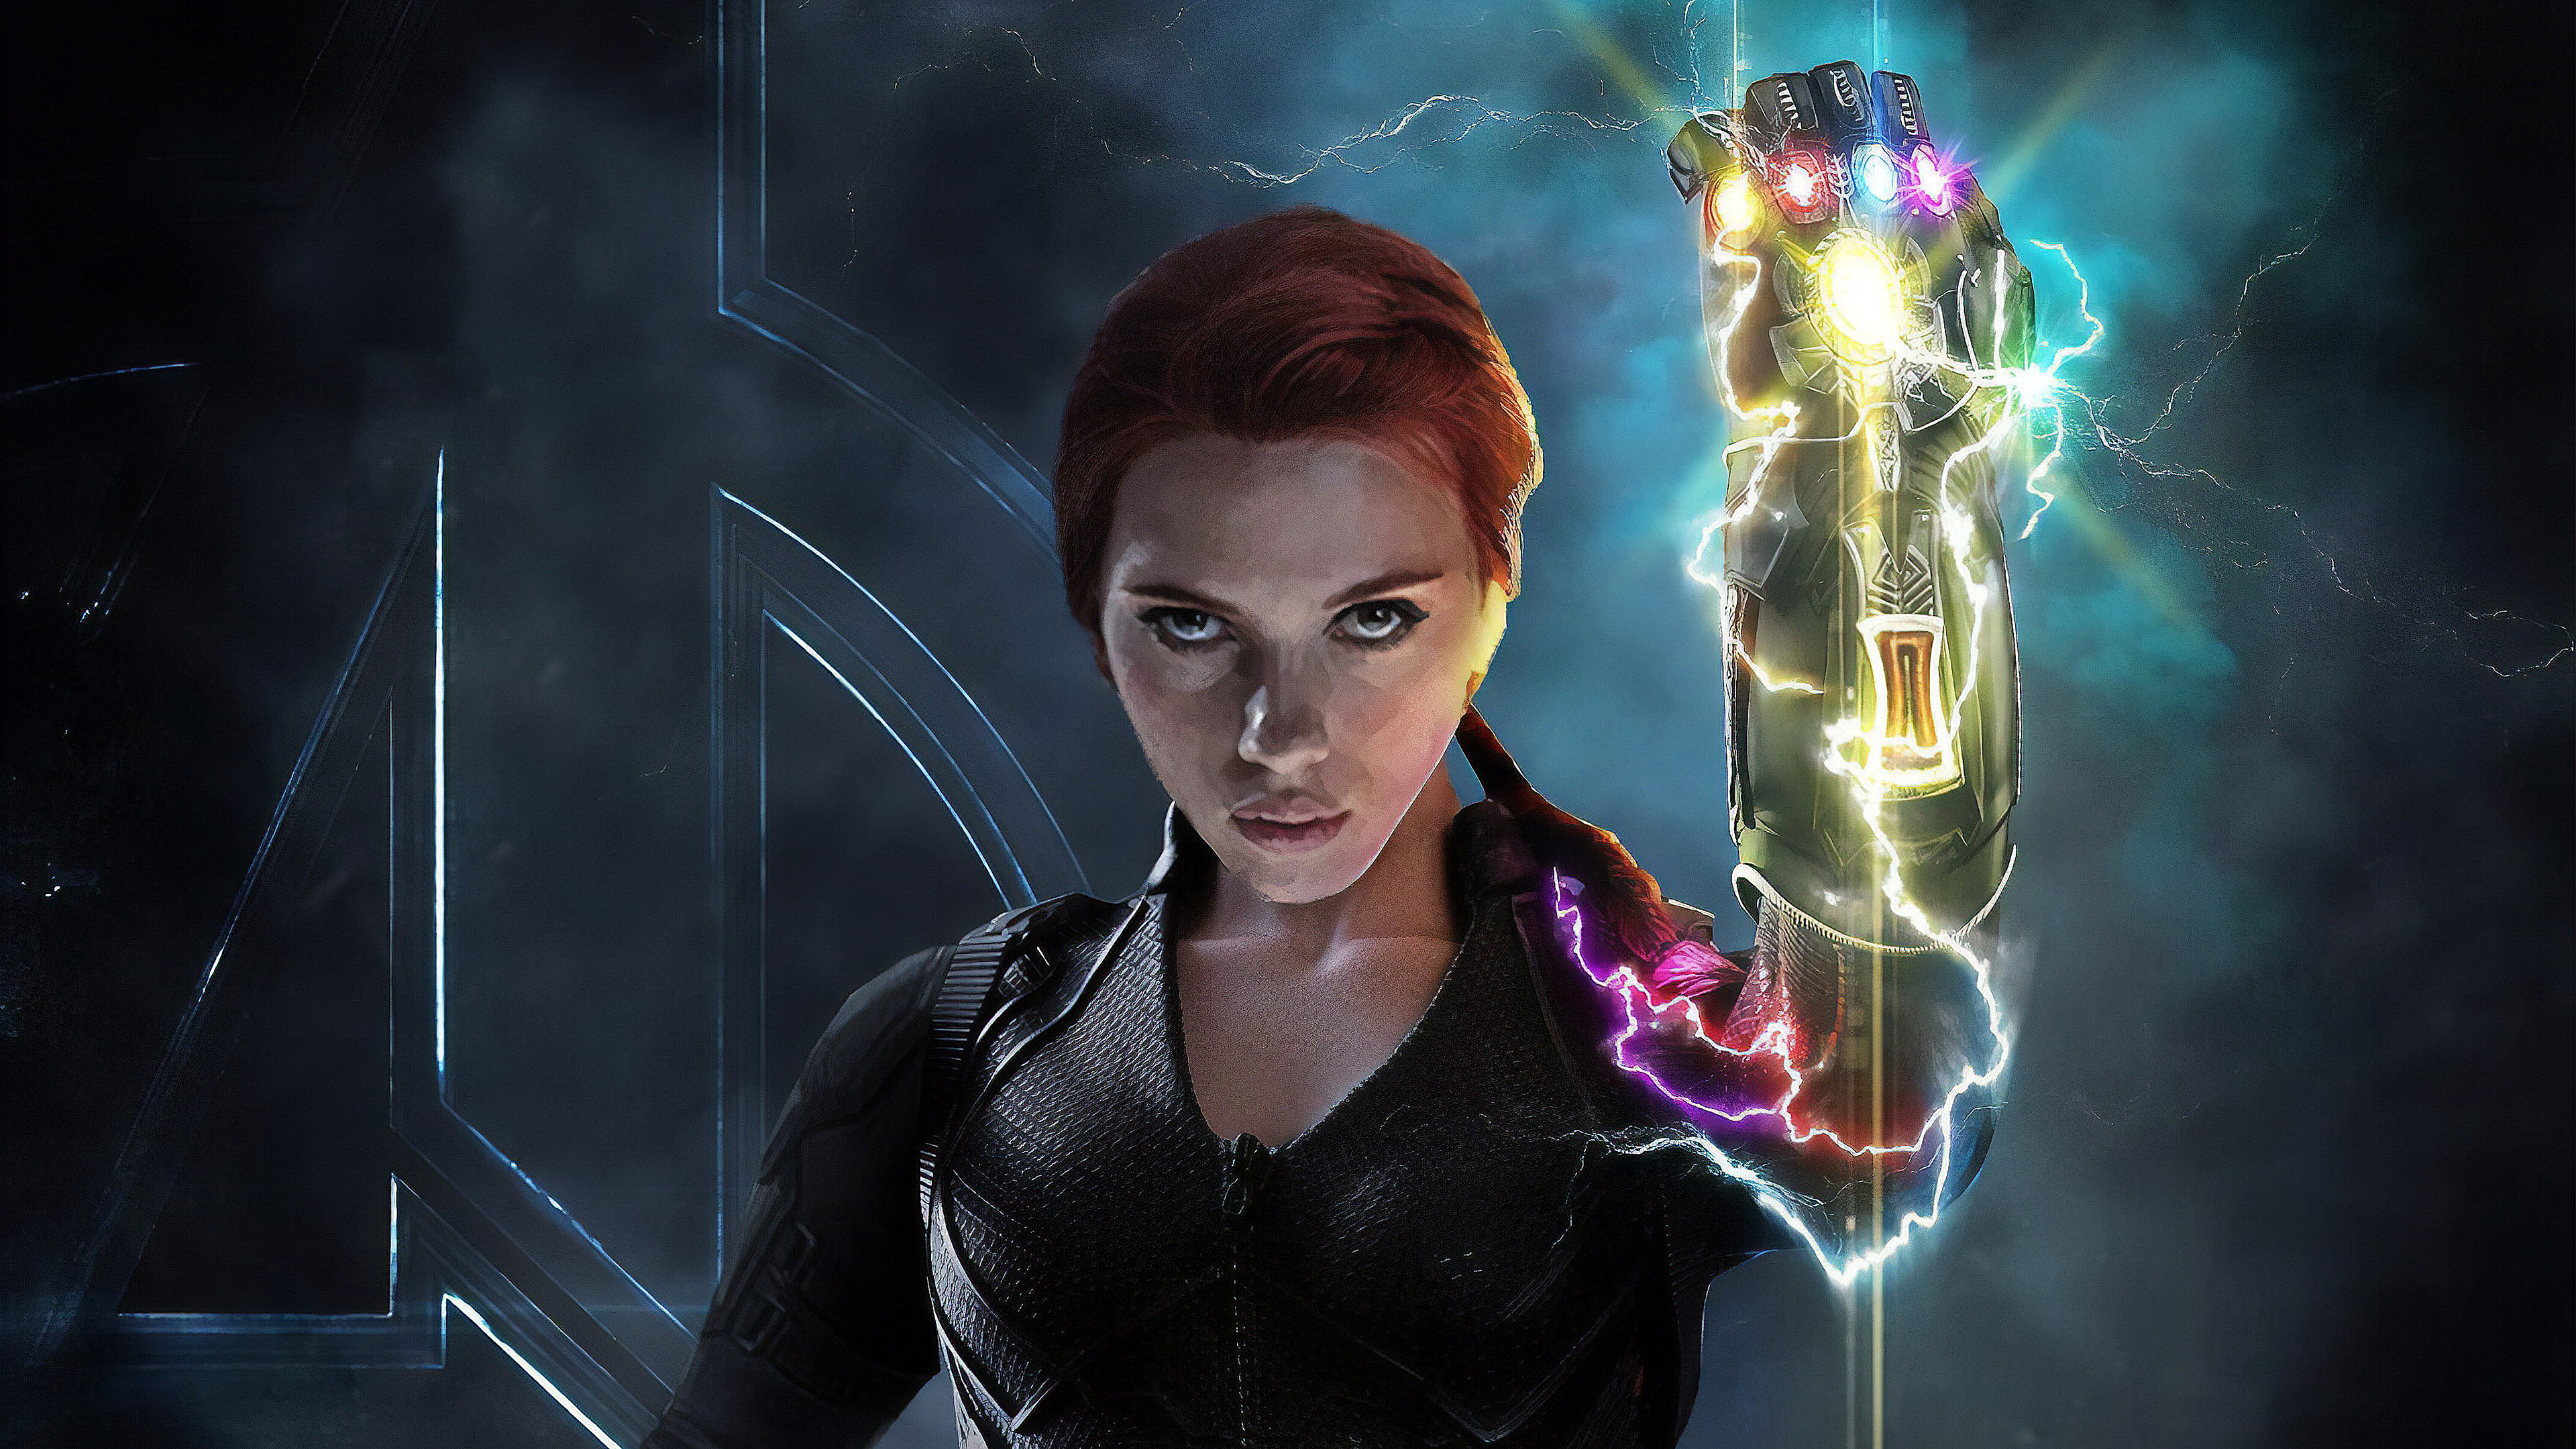 2560x1700 Black Widow With Infinity Gauntlet Chromebook Pixel Hd 4k Wallpapers Images Backgrounds Photos And Pictures